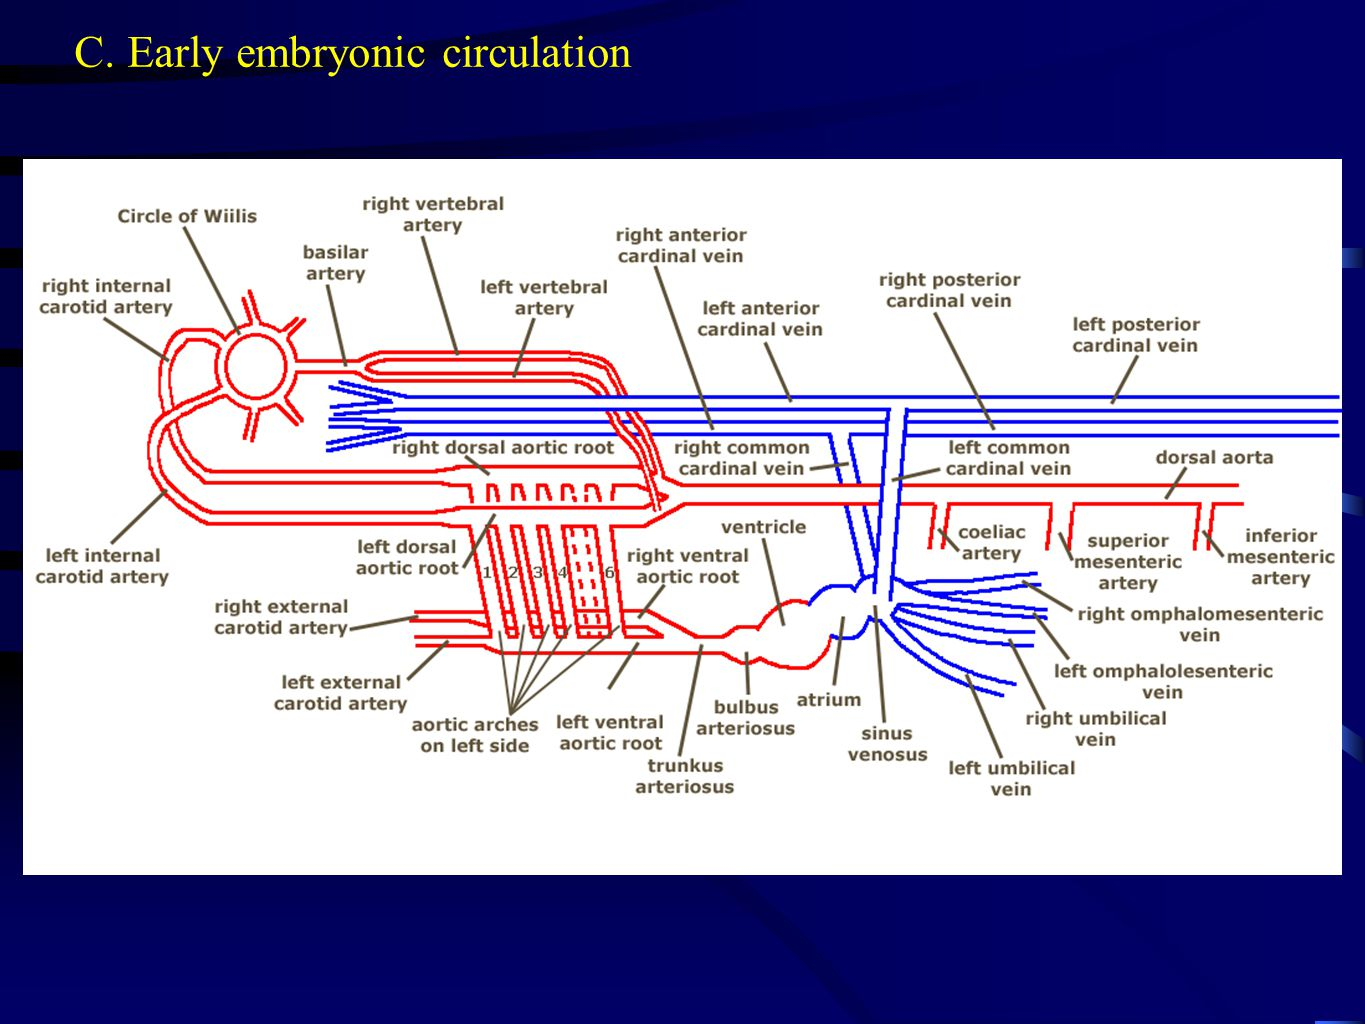 C. Early embryonic circulation